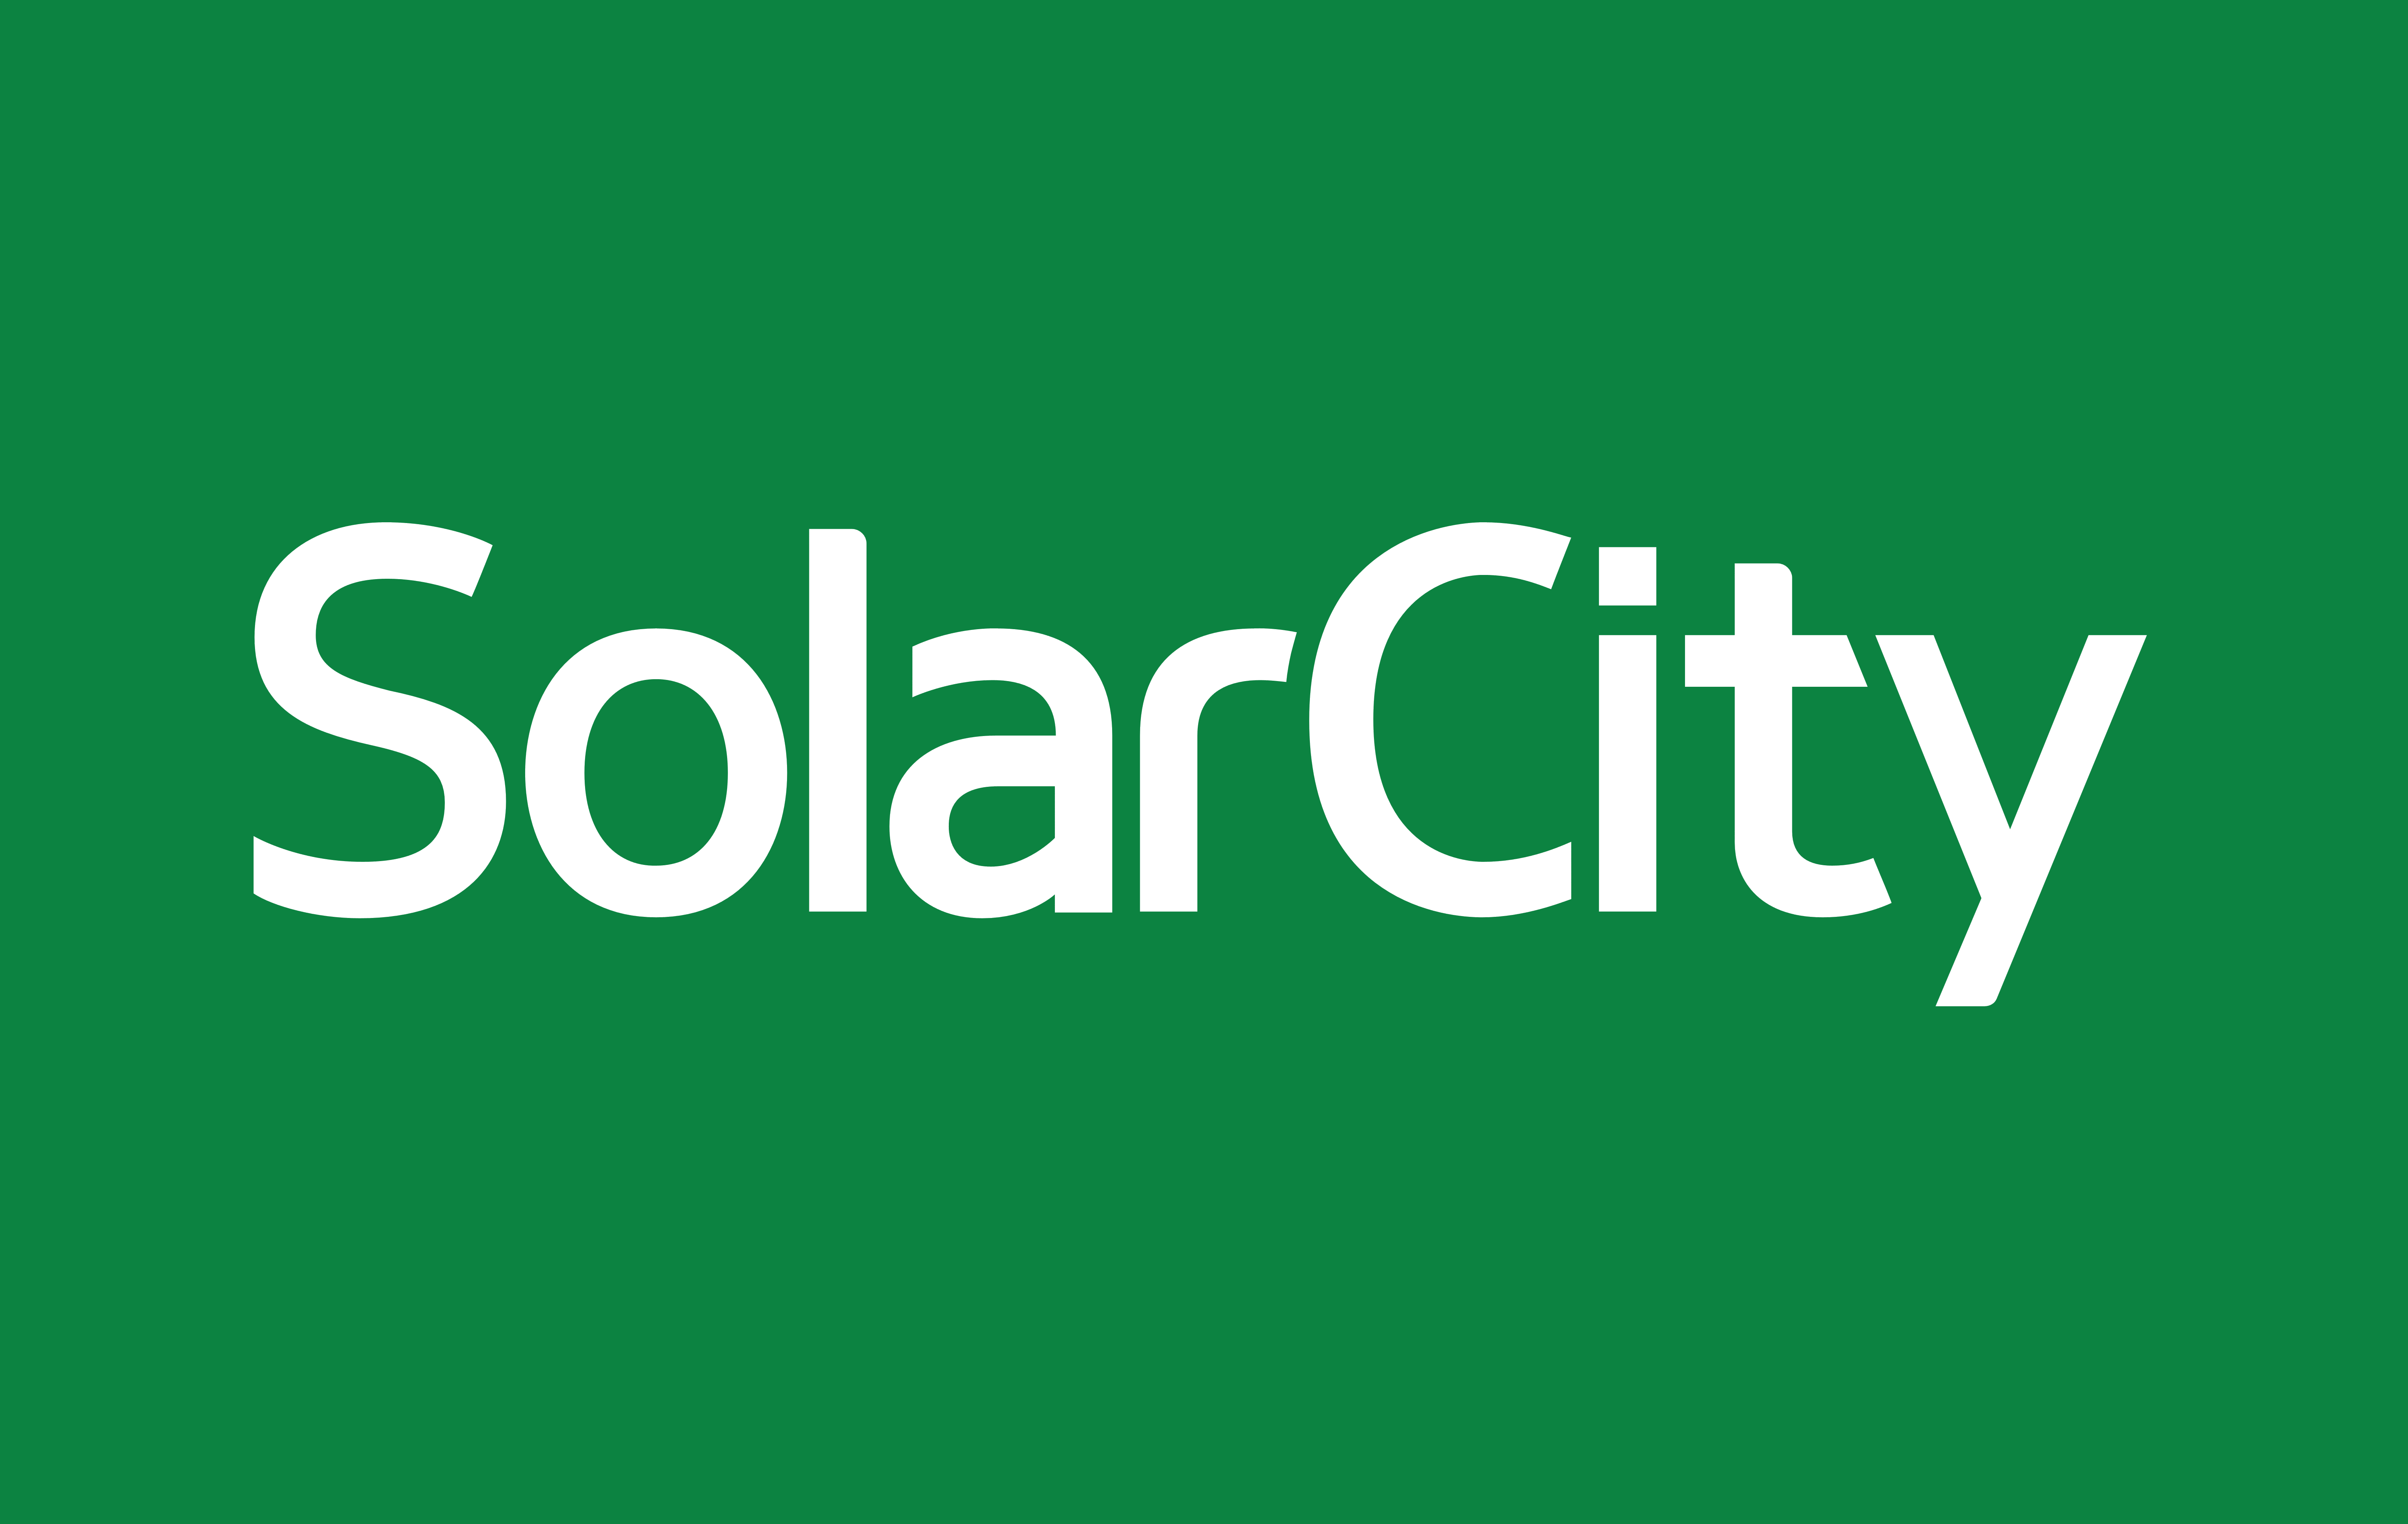 SolarCity Logo - SolarCity (Solar City) – Logos Download